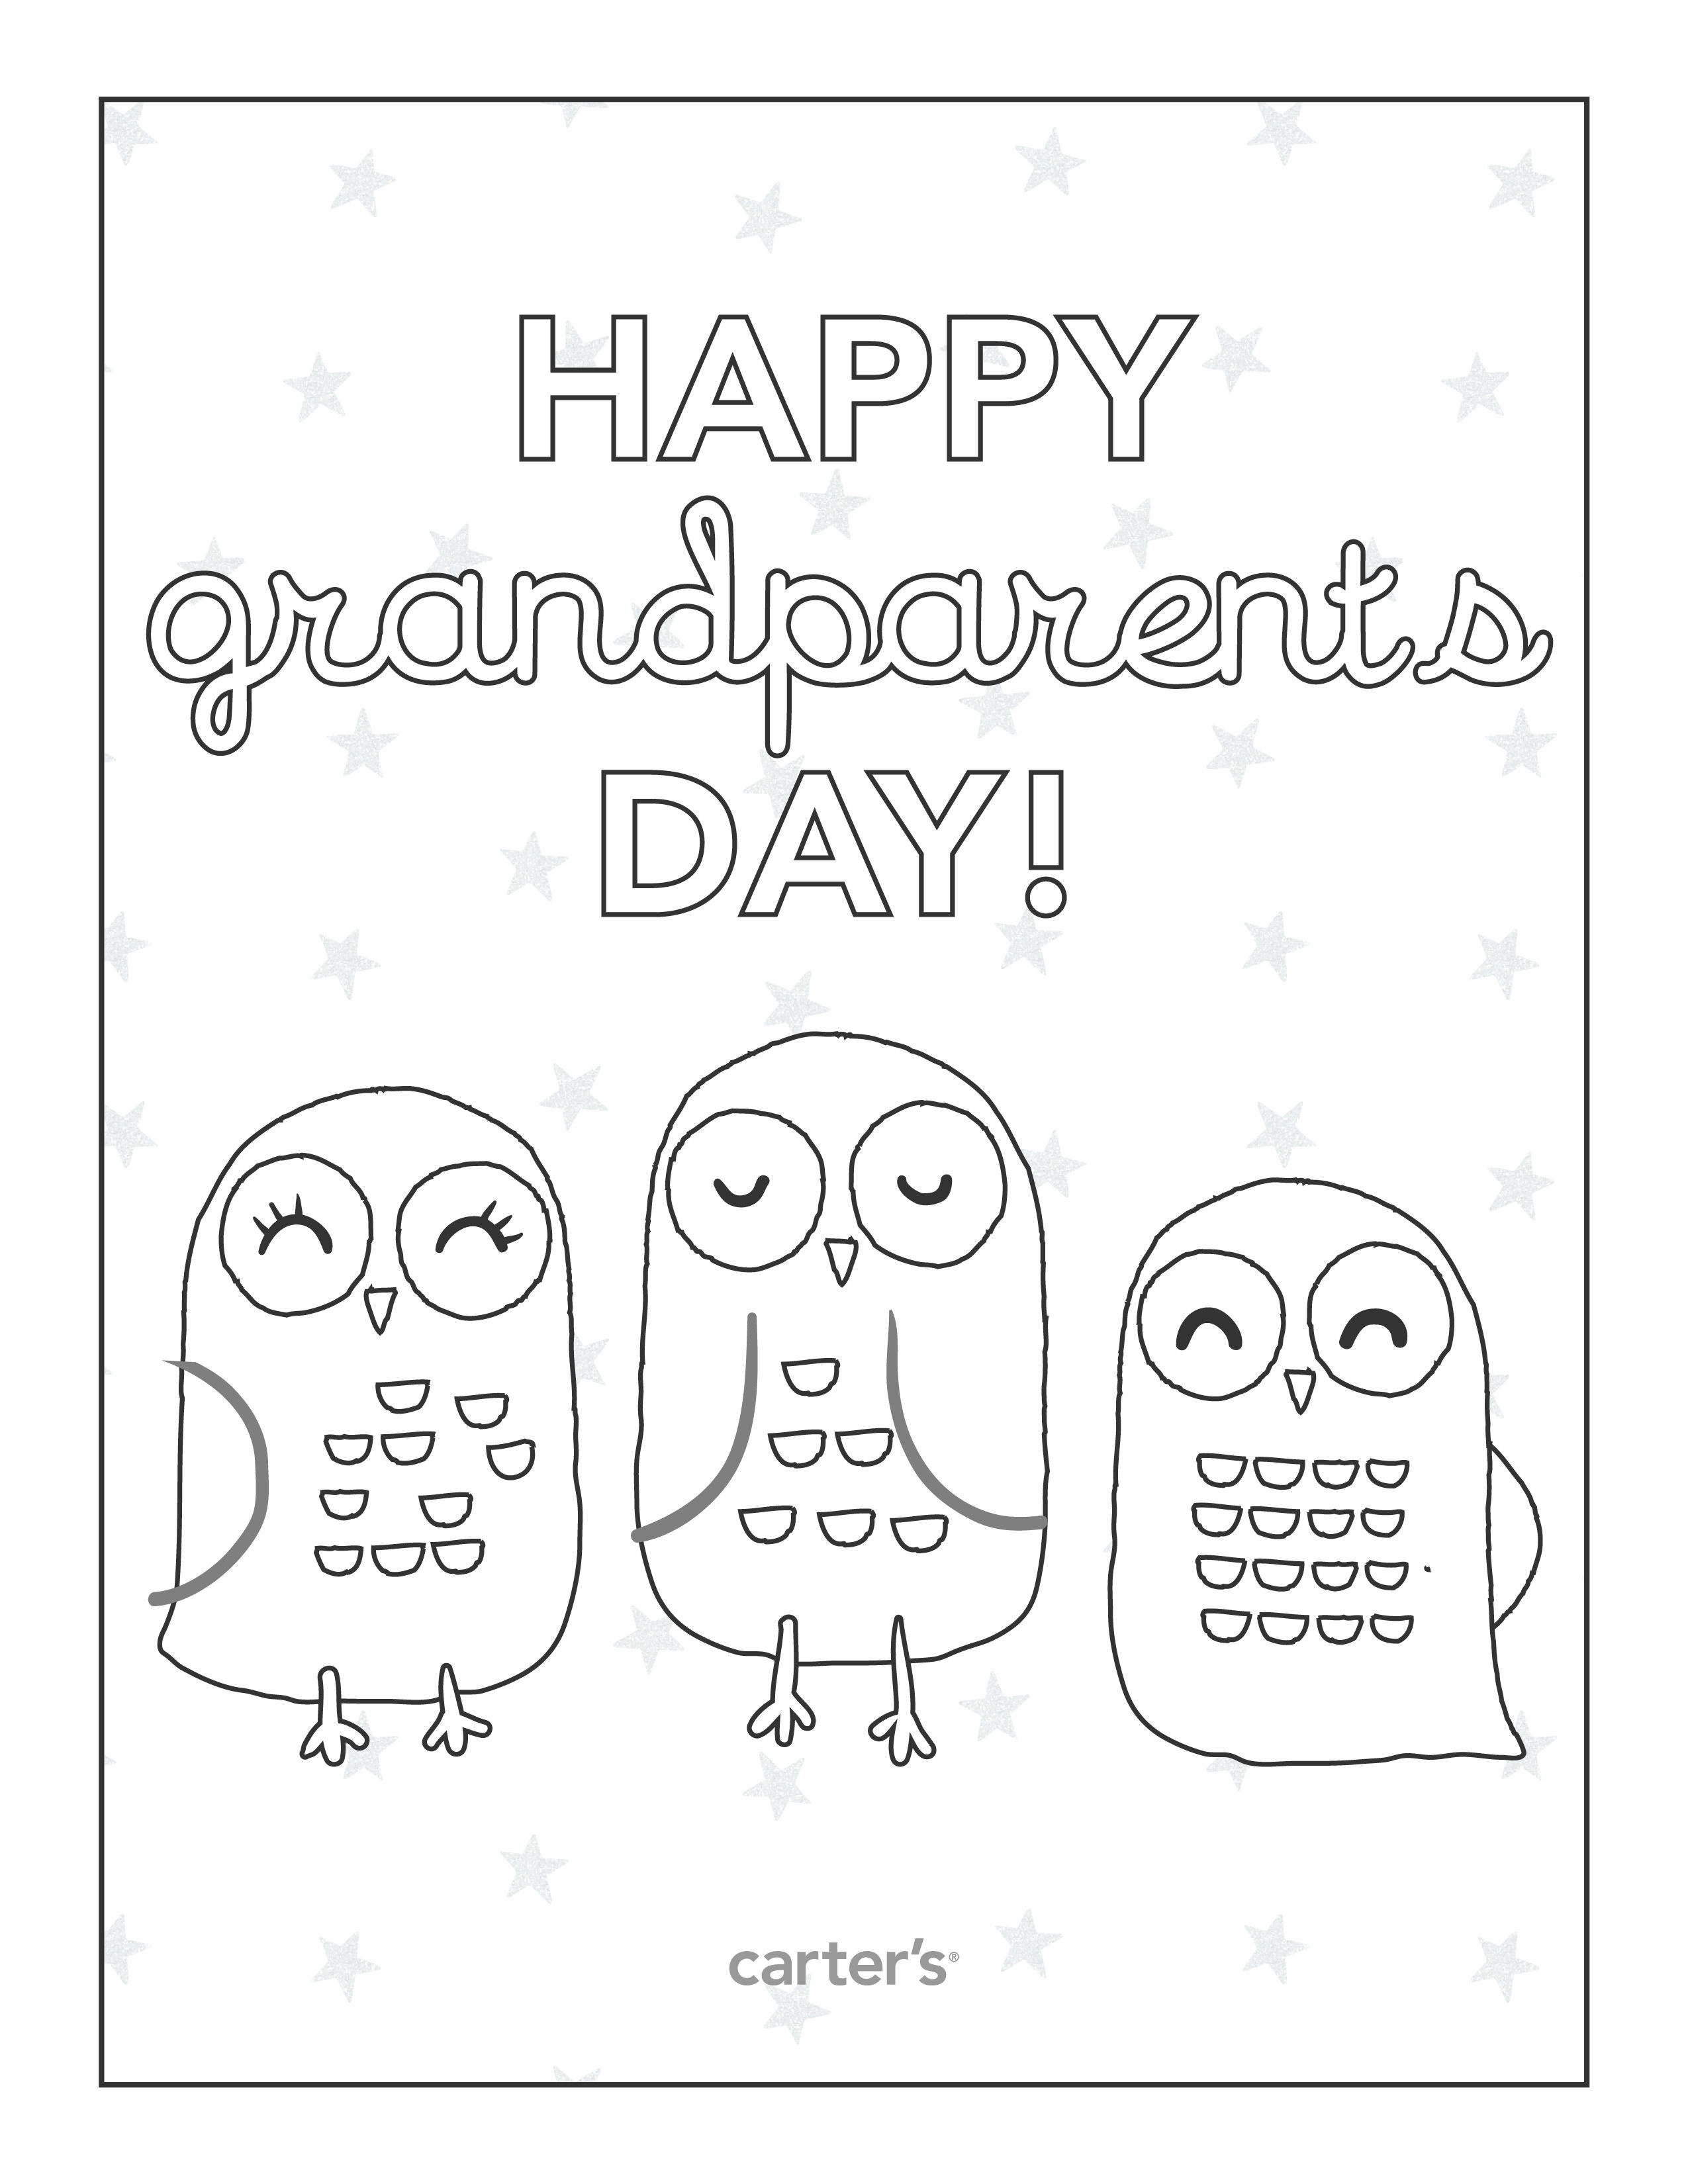 Free Printable Grandparents Day Coloring Pages From Carter's - Grandparents Day Cards Printable Free